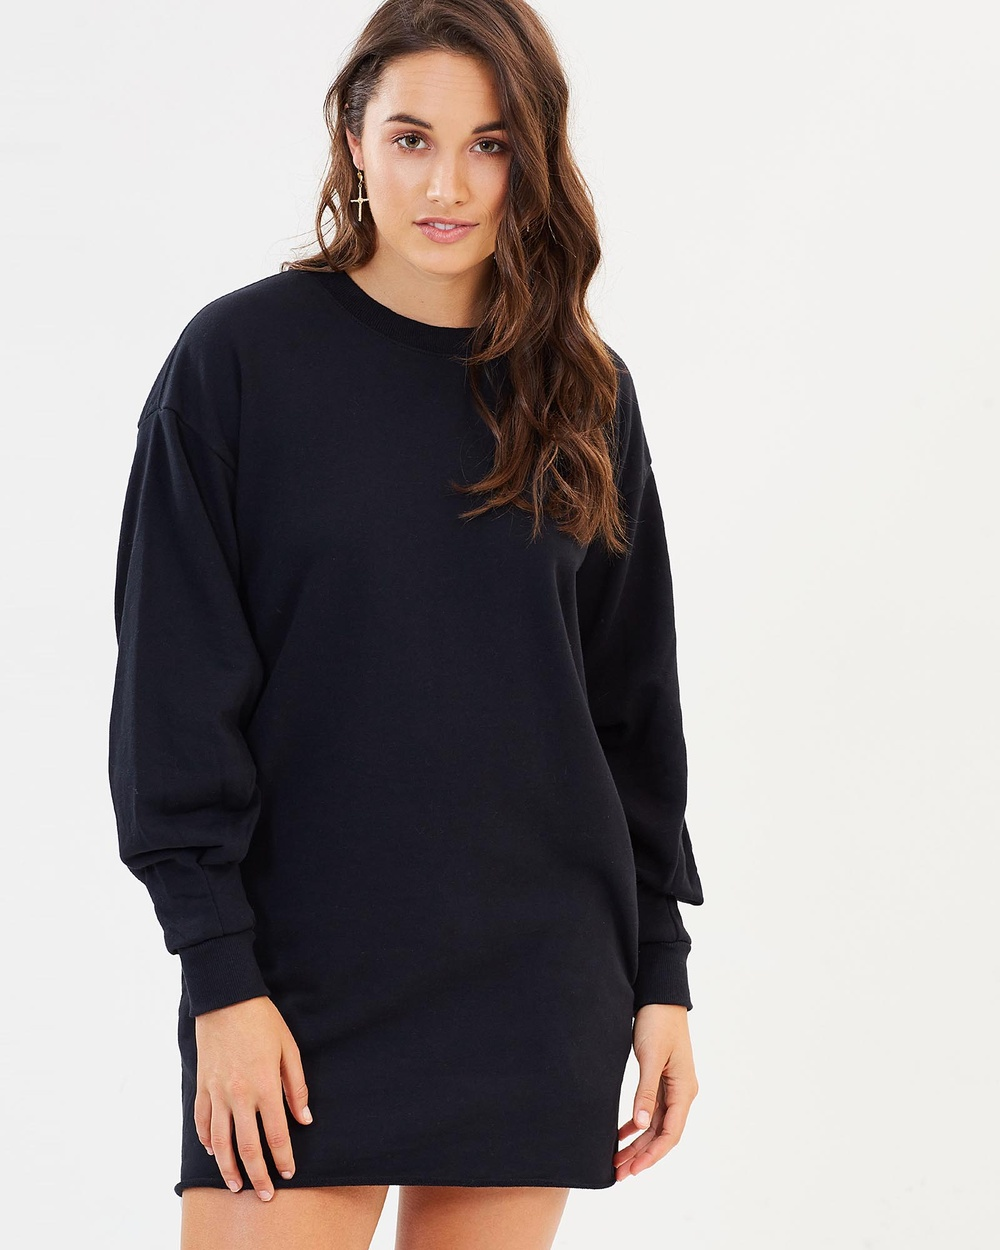 Rusty Cool It Fleece Dress Dresses Black Cool It Fleece Dress